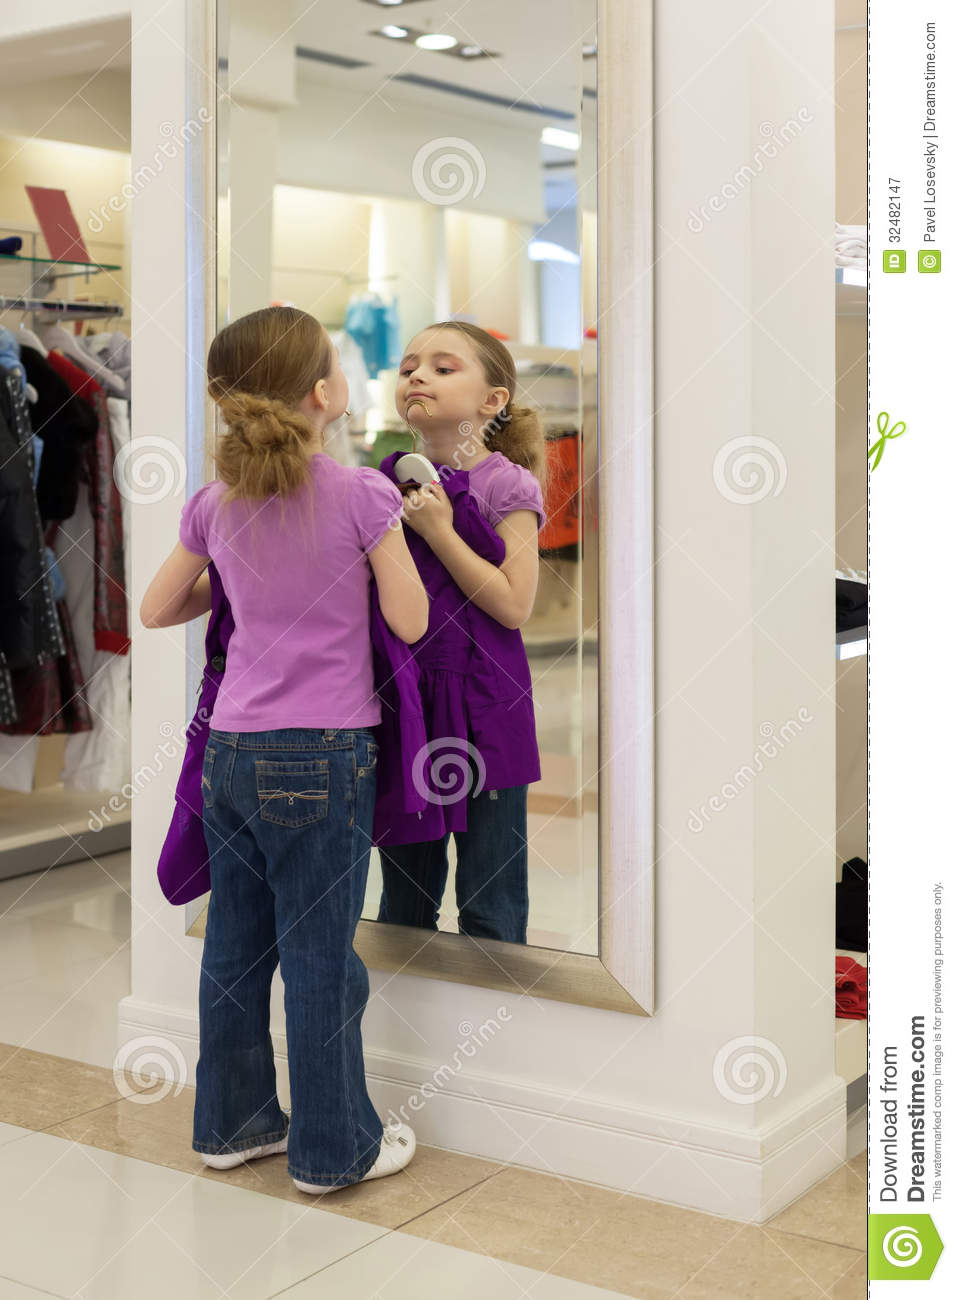 Little girl near a mirror try on clothes in a store stock for Mirror warehouse near me